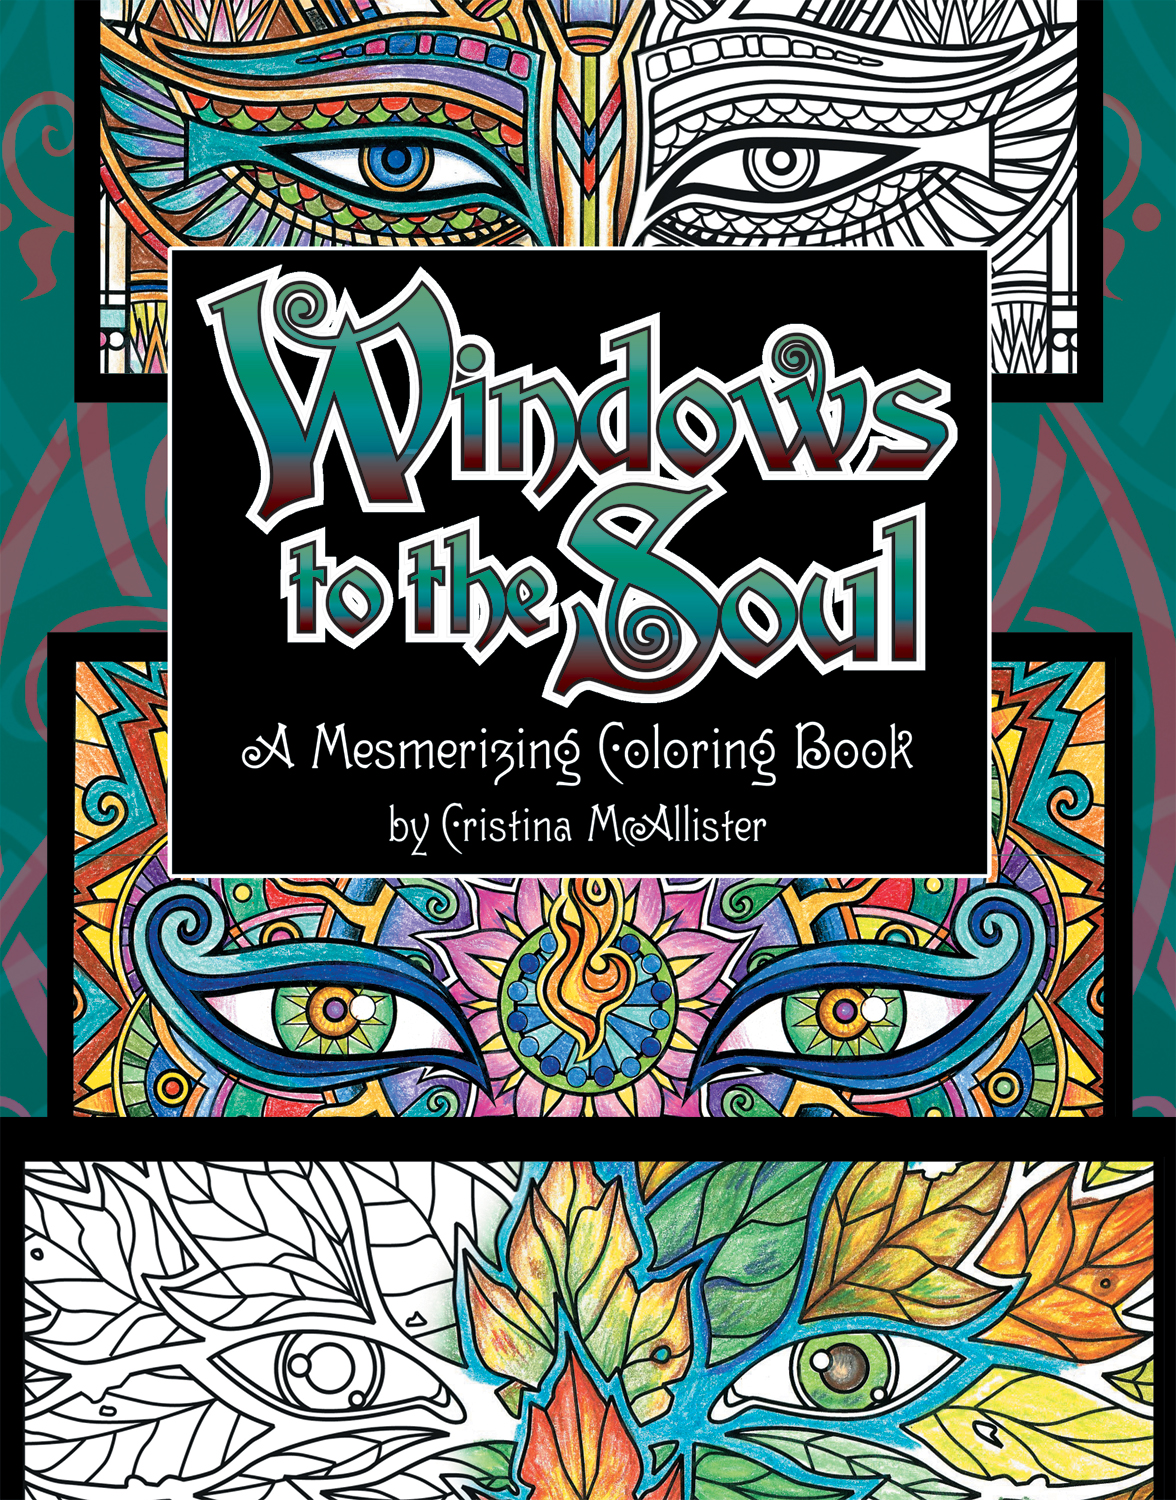 My Second Coloring Book Is Now Available